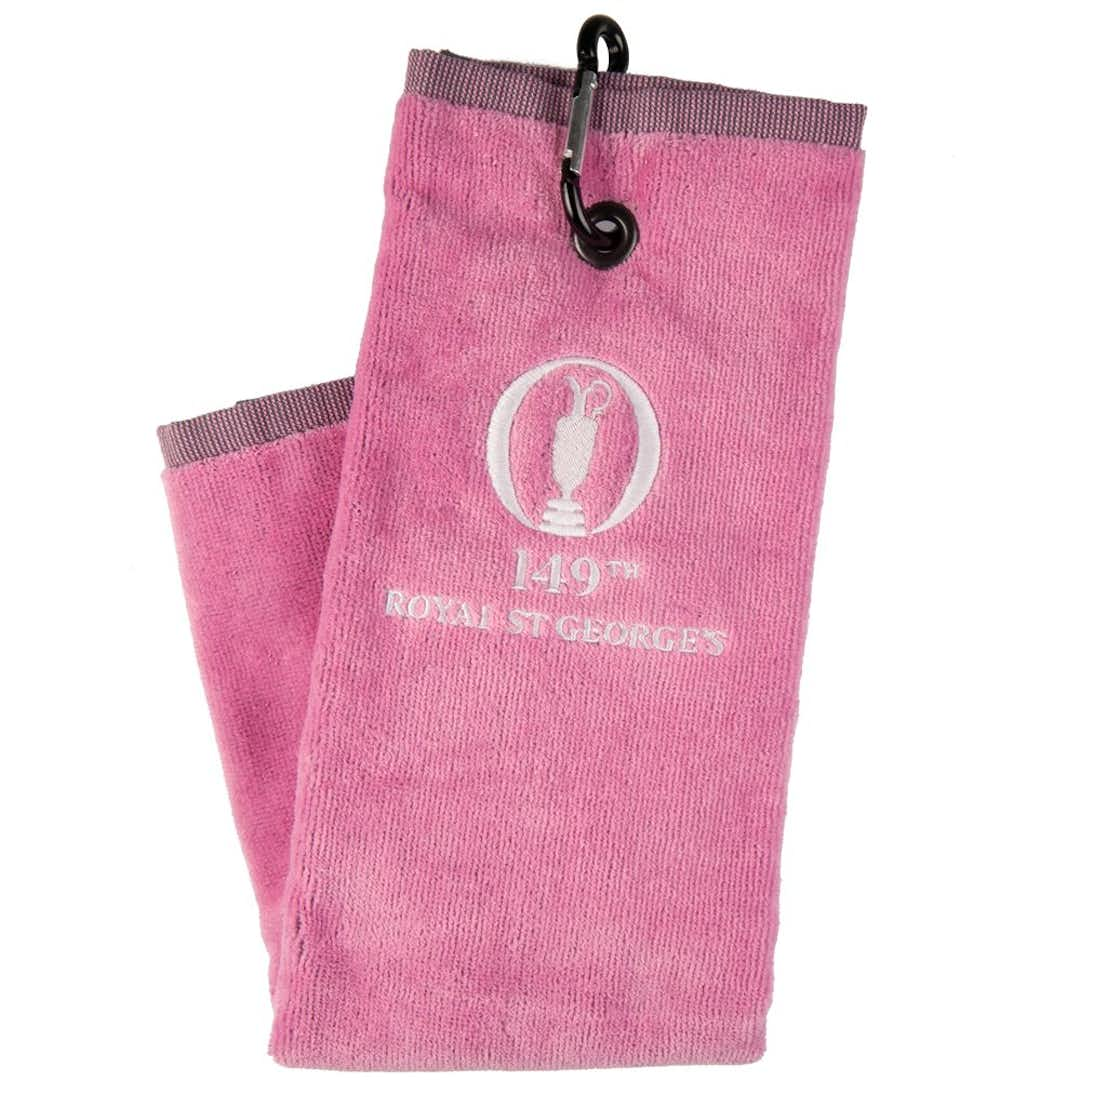 149th Royal St George's Standard Trifold Towel - Pink